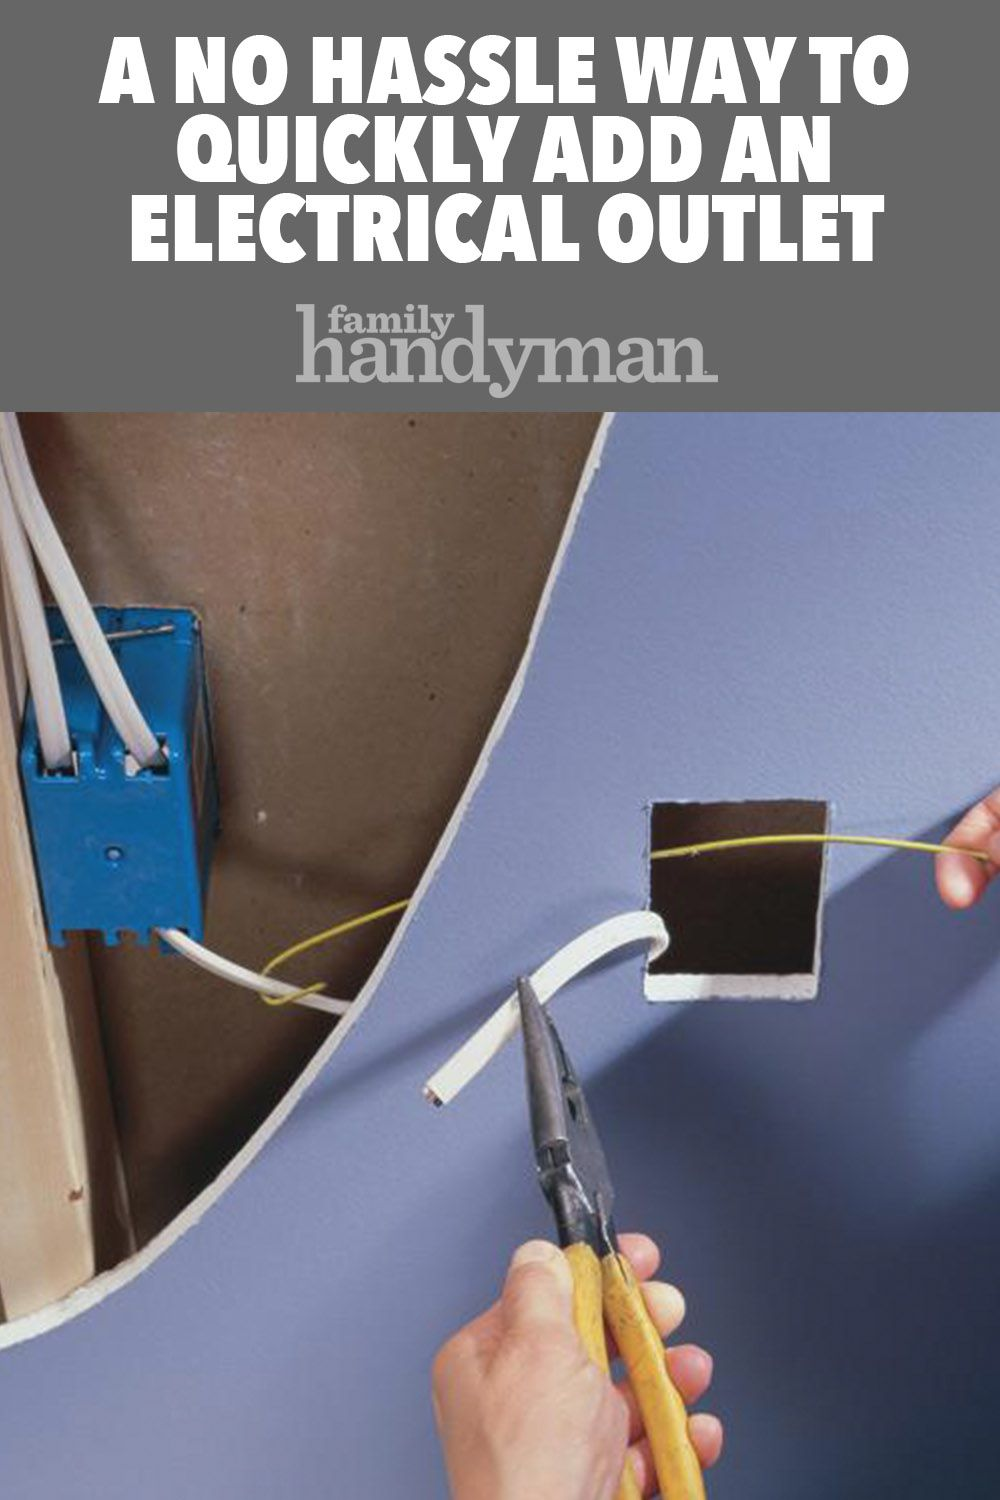 A No Hassle Way to Quickly Add an Electrical Outlet